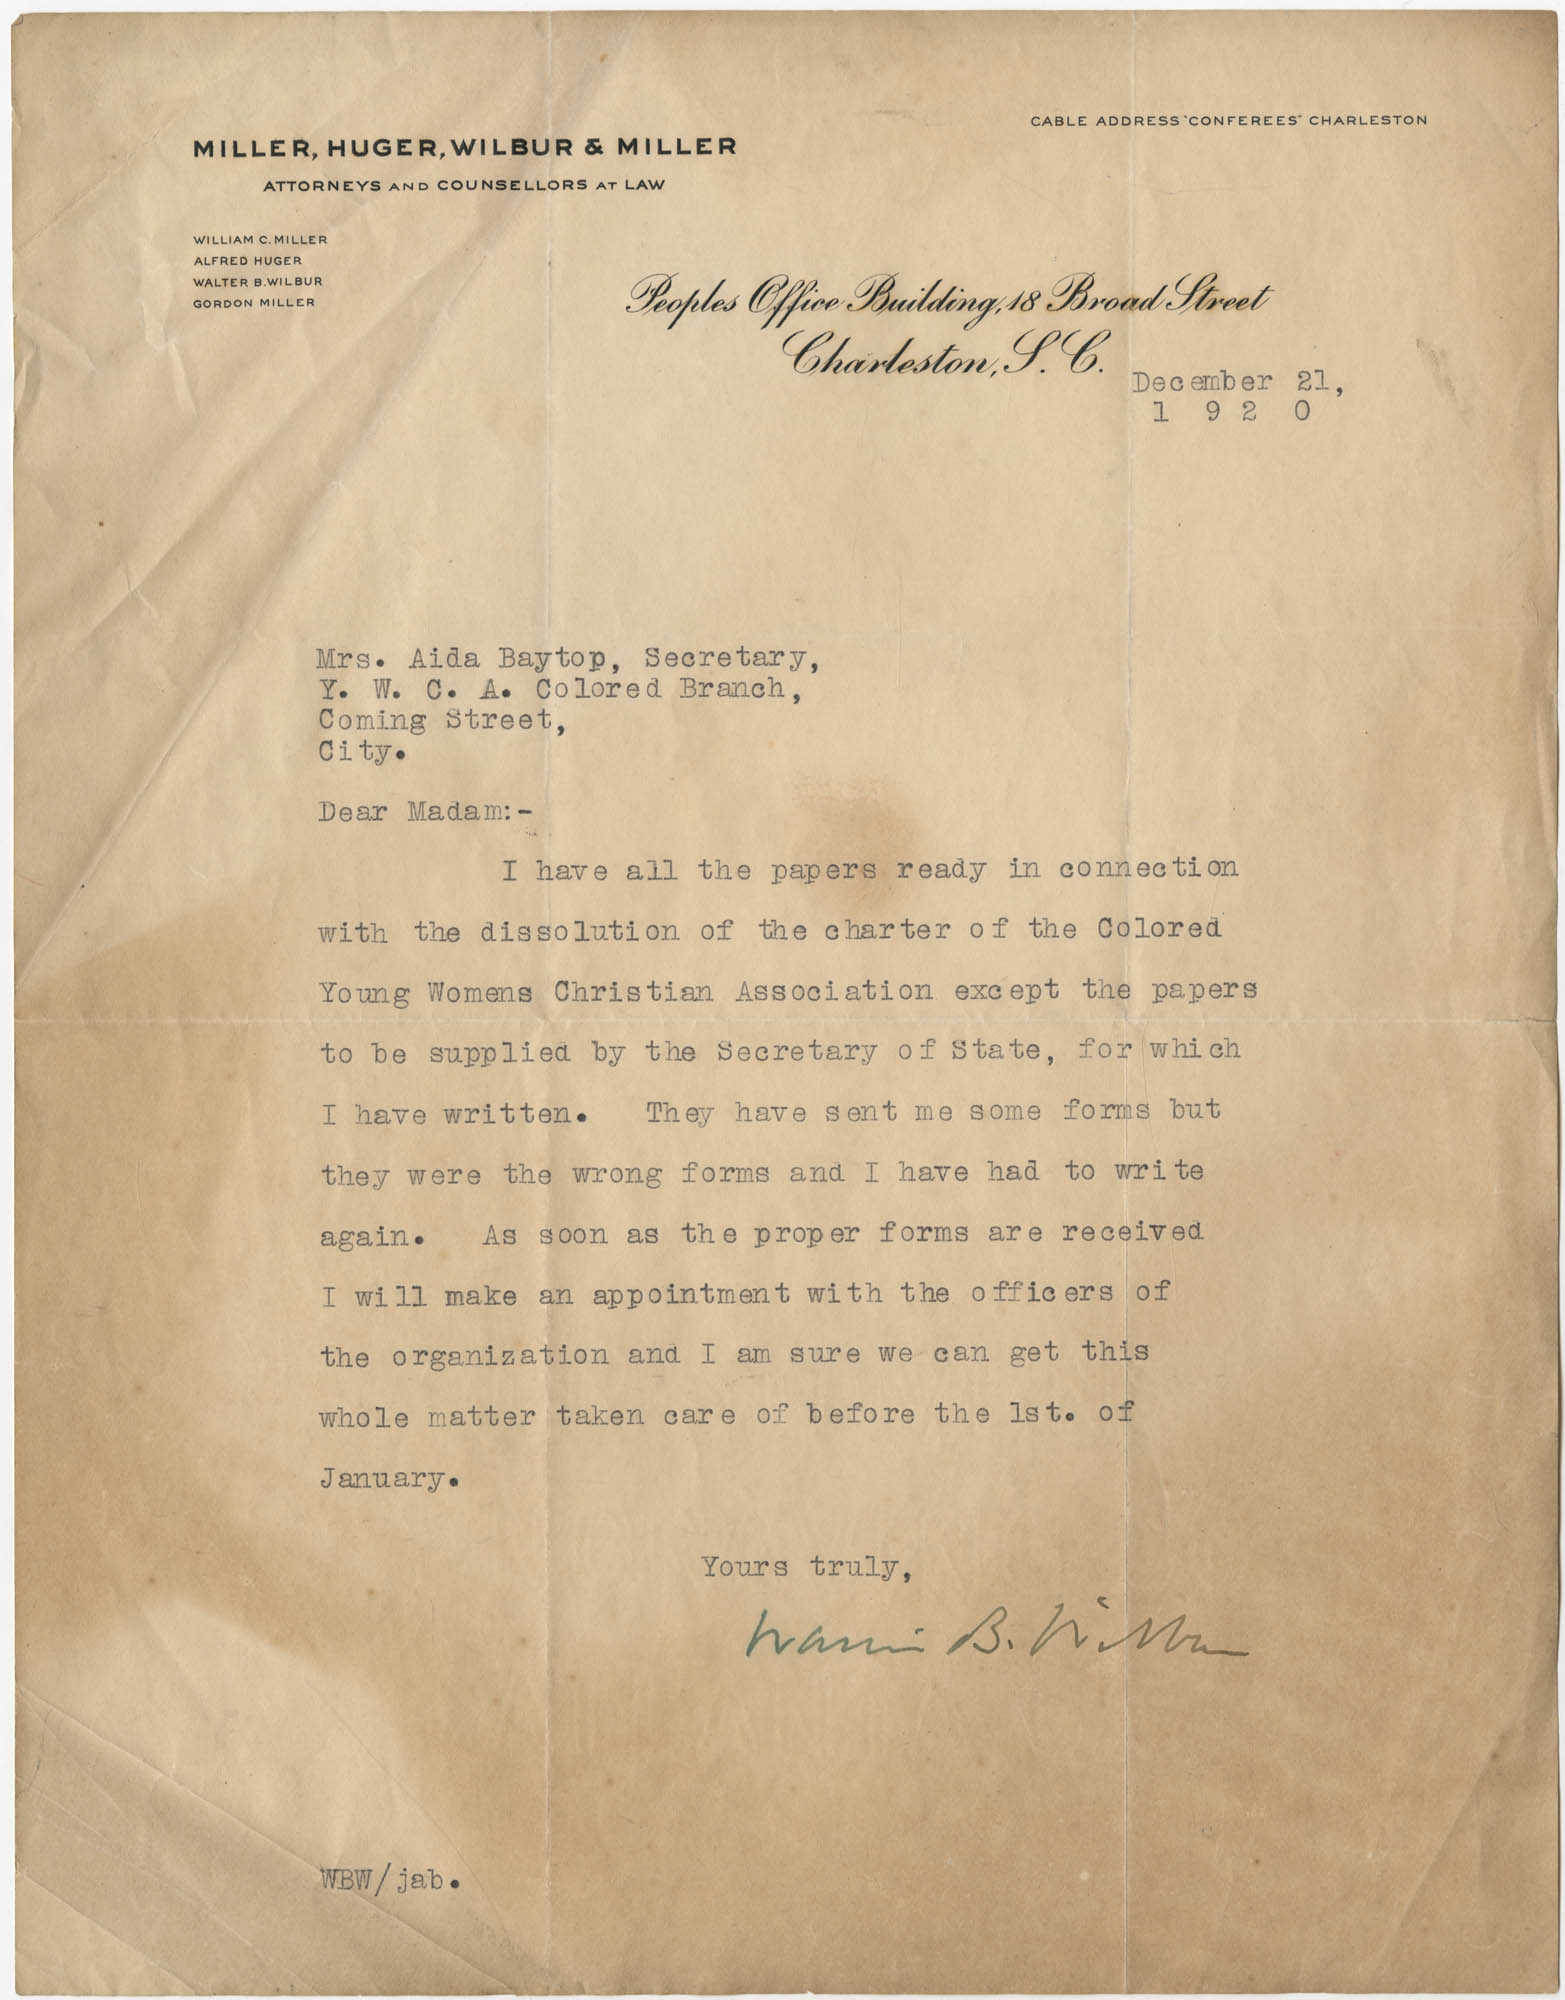 Letter from Walter B. Wilbur to Ada C. Baytop, December 21, 1920